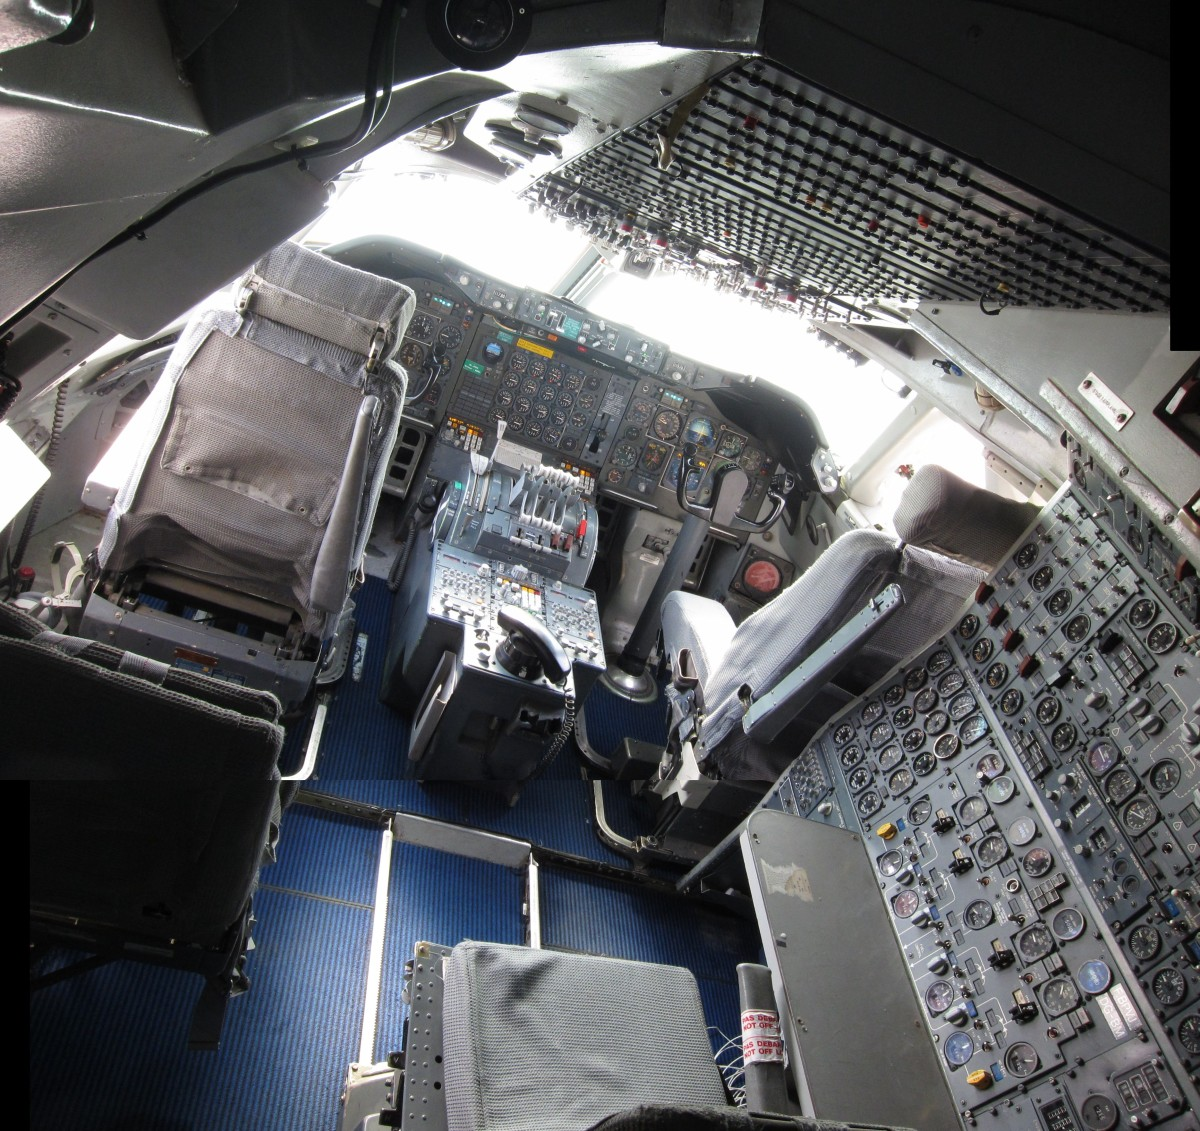 Automation in Aircraft: The Changing Role of the Pilot | TurboFuture